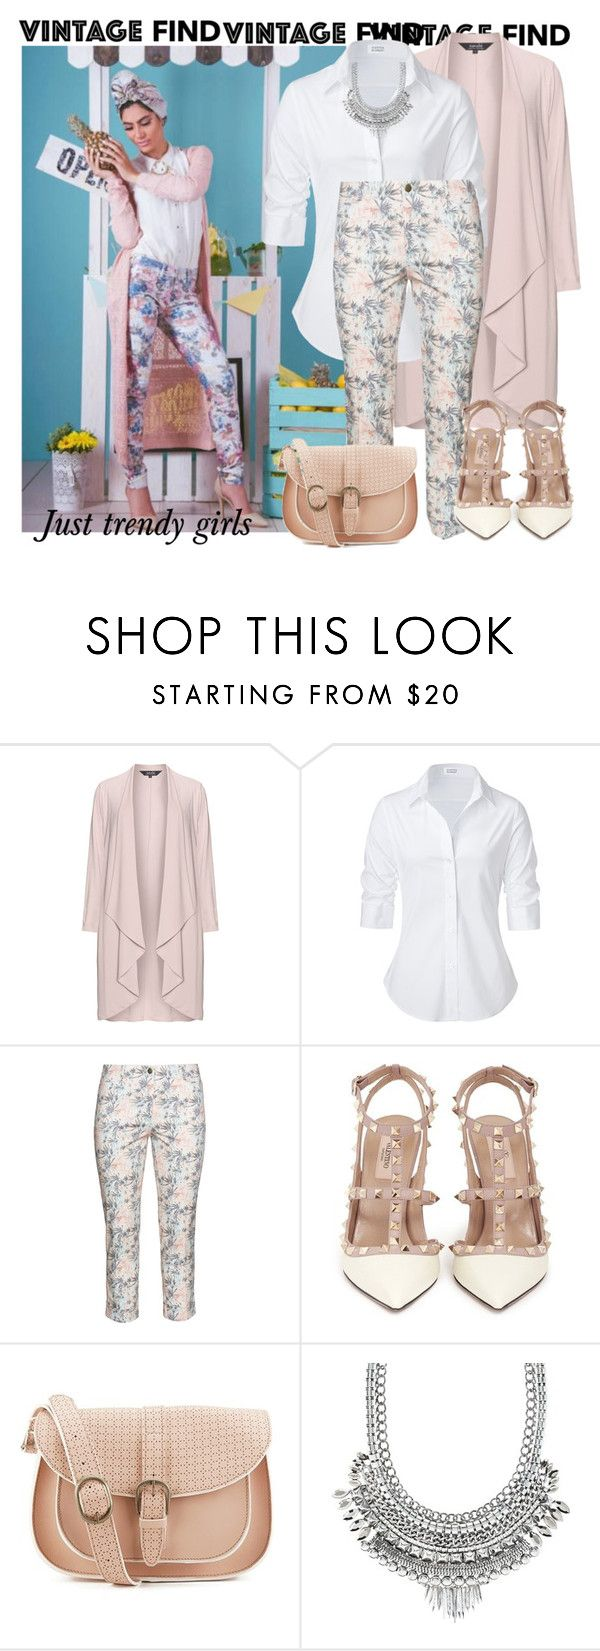 """""""long cardi"""" by justtrendygirls ❤ liked on Polyvore featuring navabi, Steffen Schraut, Raphaela by Brax, Valentino, Maison Scotch and Charlotte Russe"""